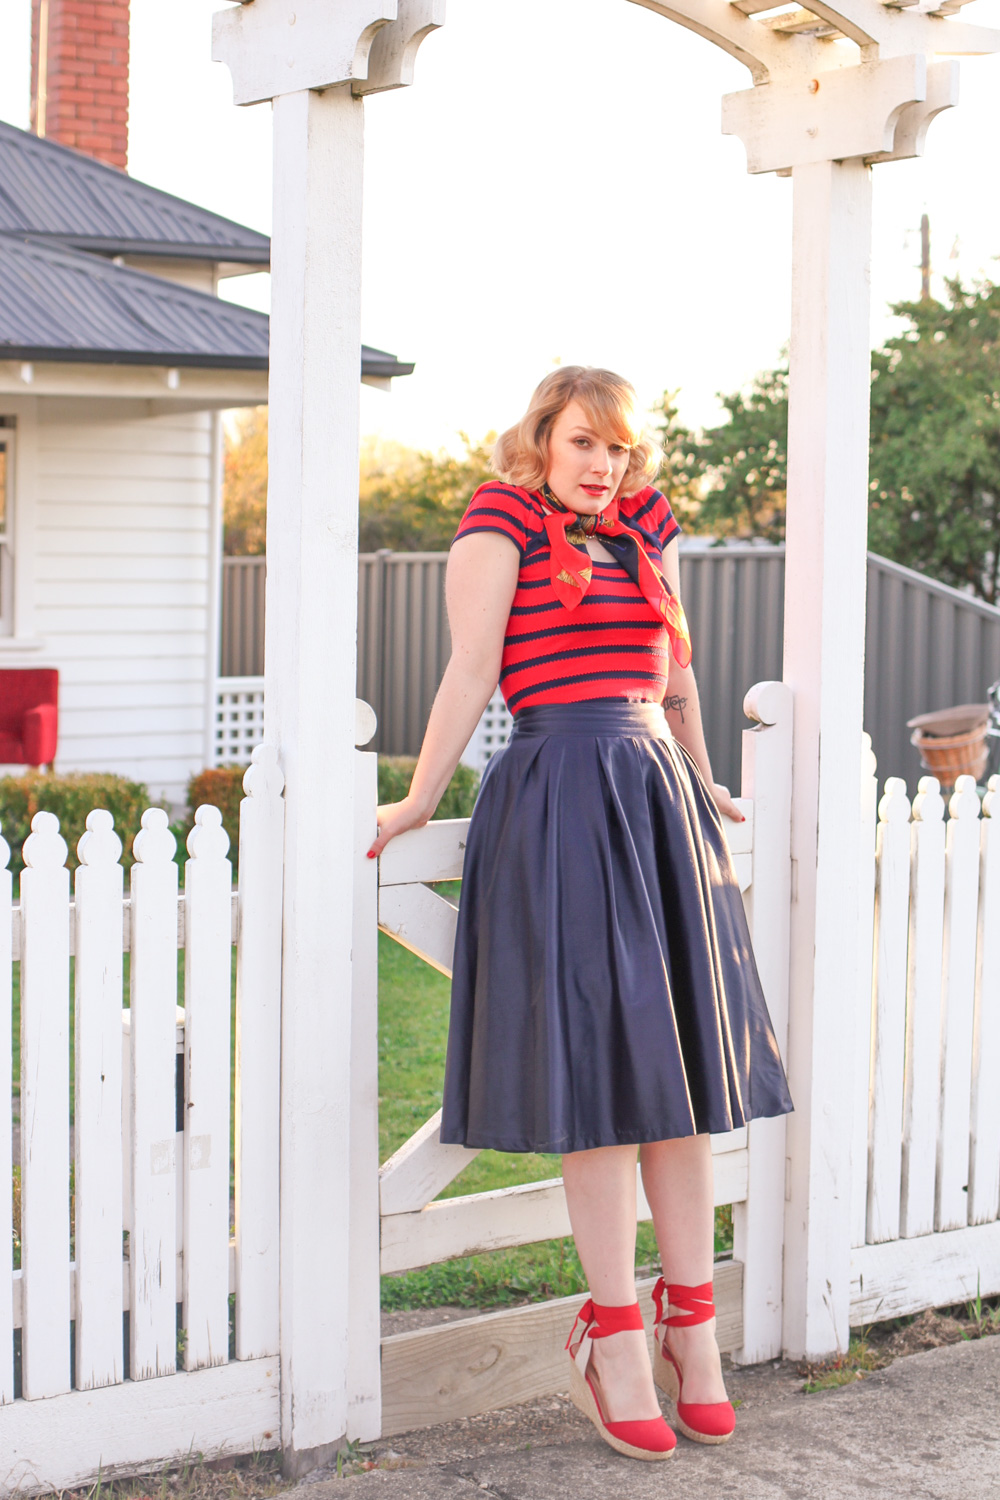 @findingfemme rides a Lekker Bike in Review Australia striped top and navy midi skirt.